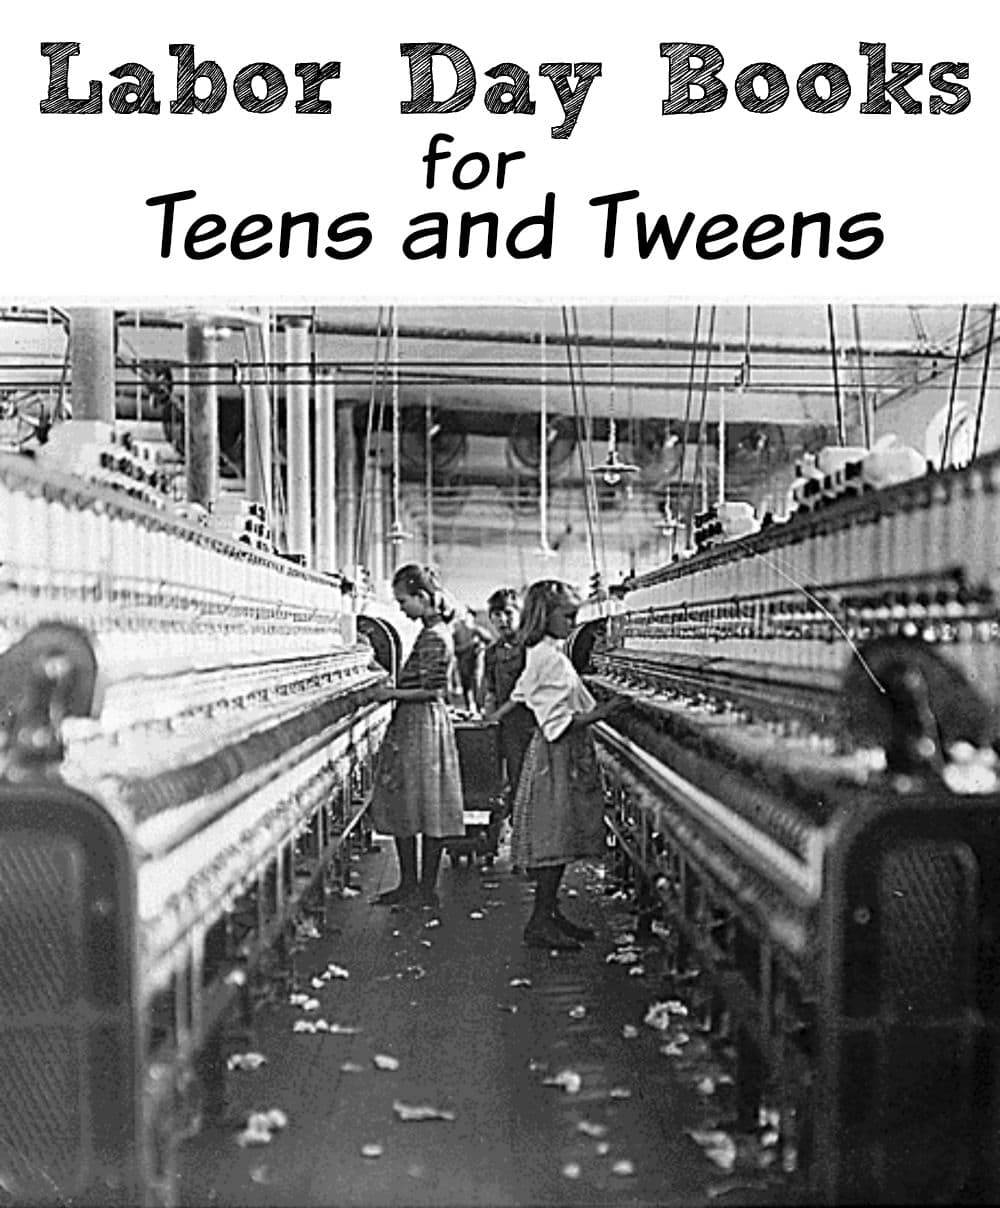 Labor Day Books for Teens and Tweens - Books to help kids learn about the labor movement and its place in U.S. history